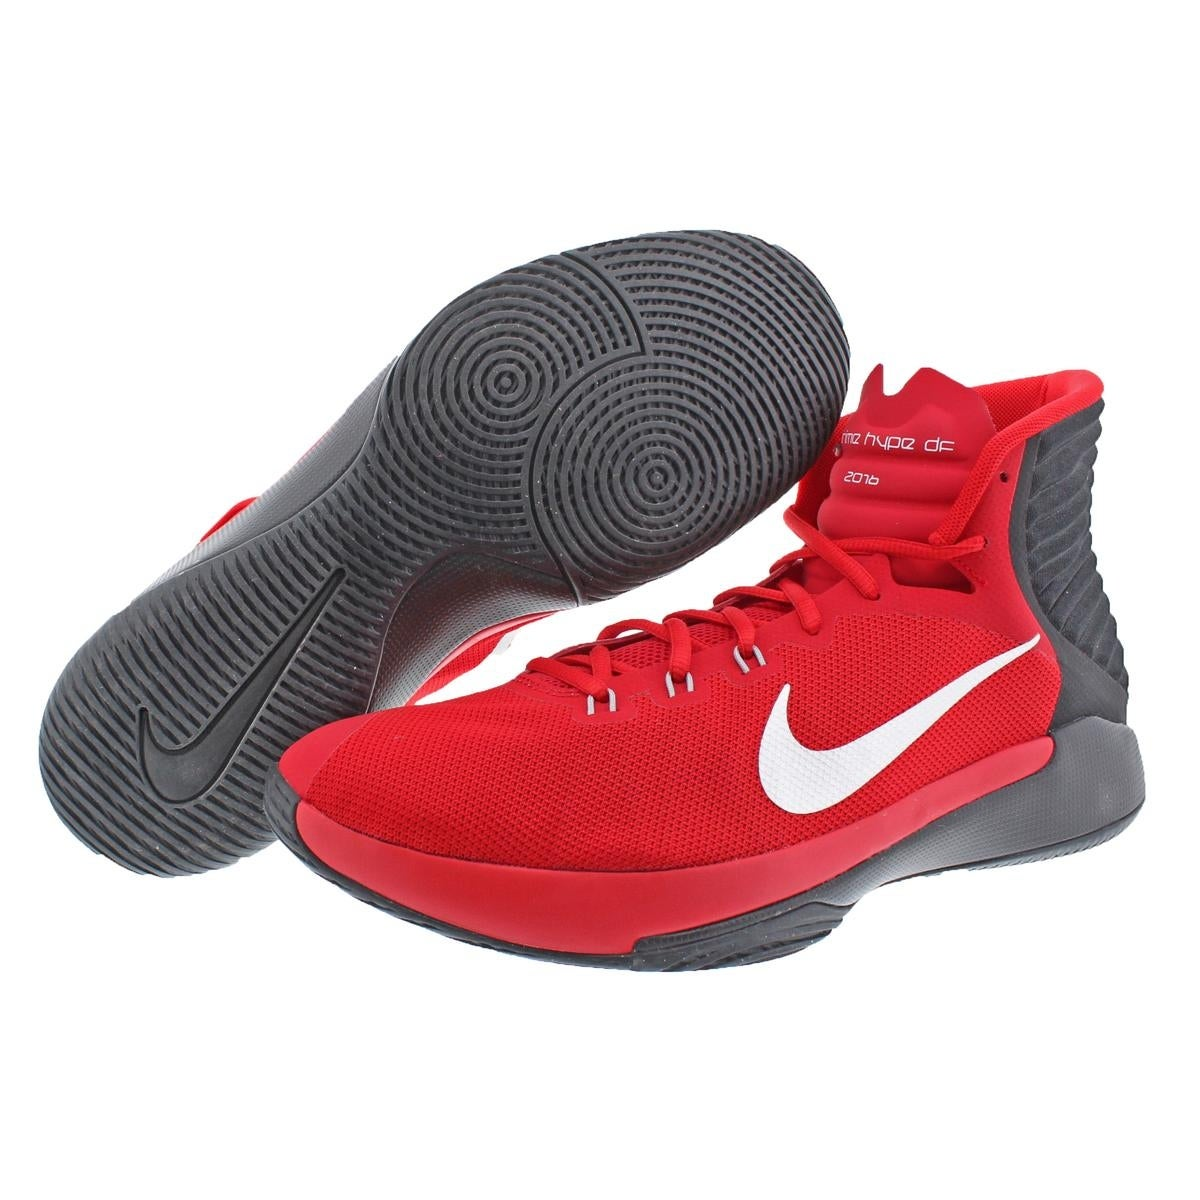 best loved cad93 eafc8 Nike Mens Prime Hype DF 2016 Basketball Shoes Textured Dual Fusion - 12  medium (d)